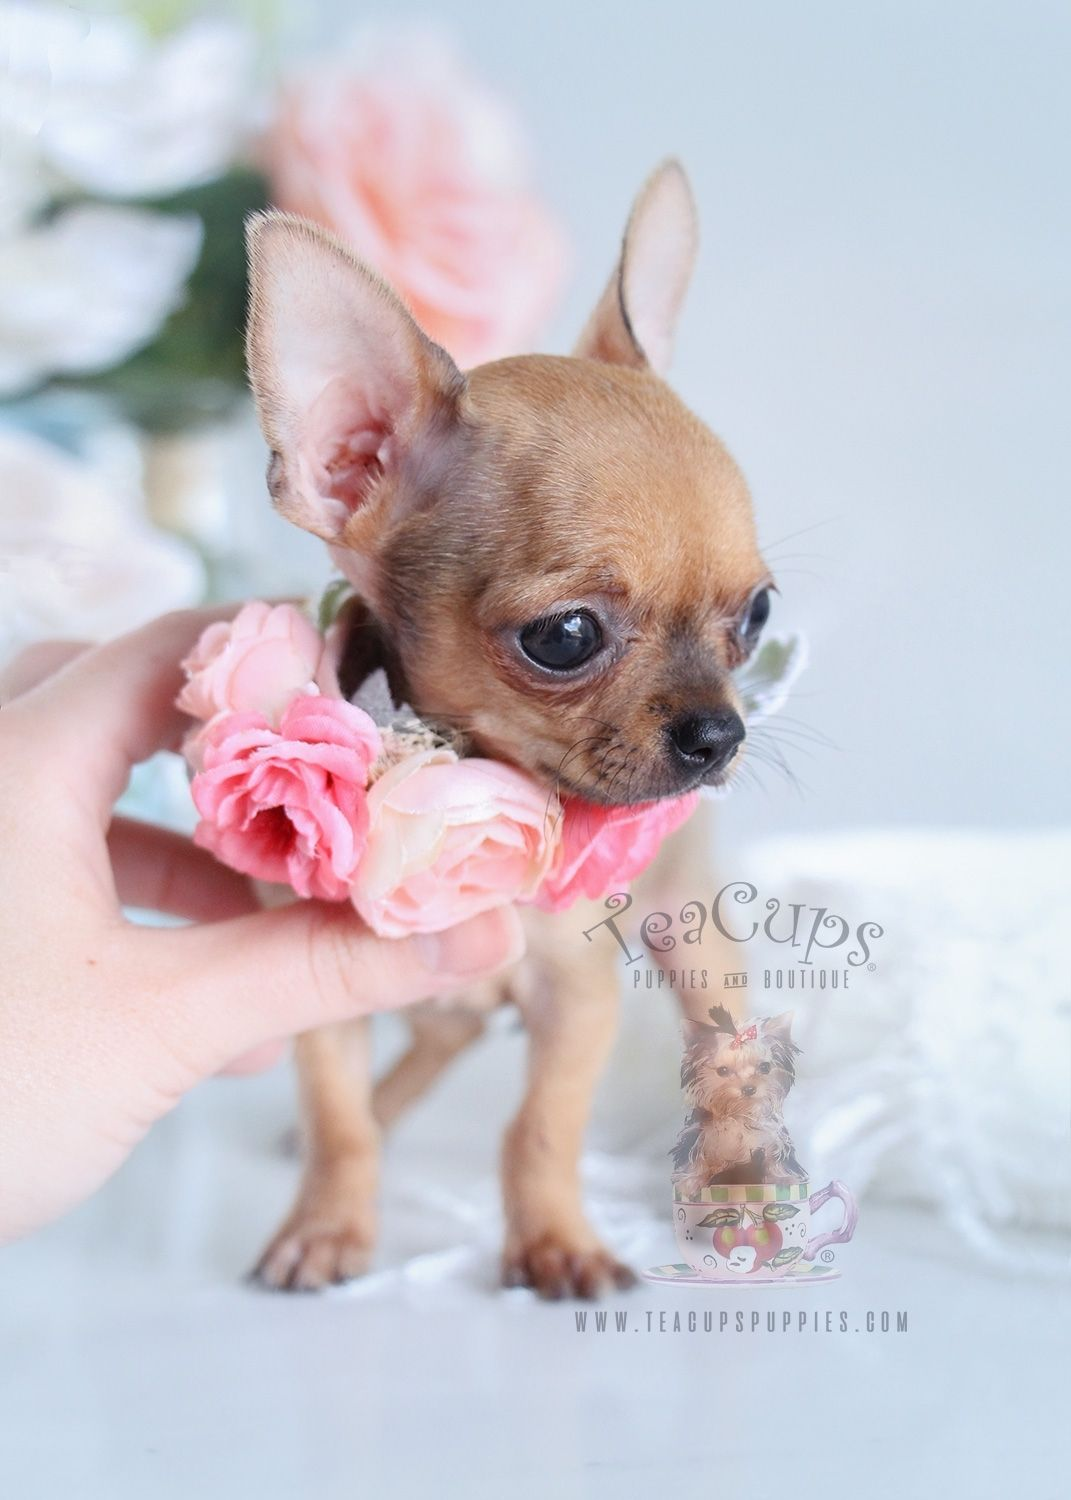 Teacup Chihuahua Puppies For Sale In Florida | puppies